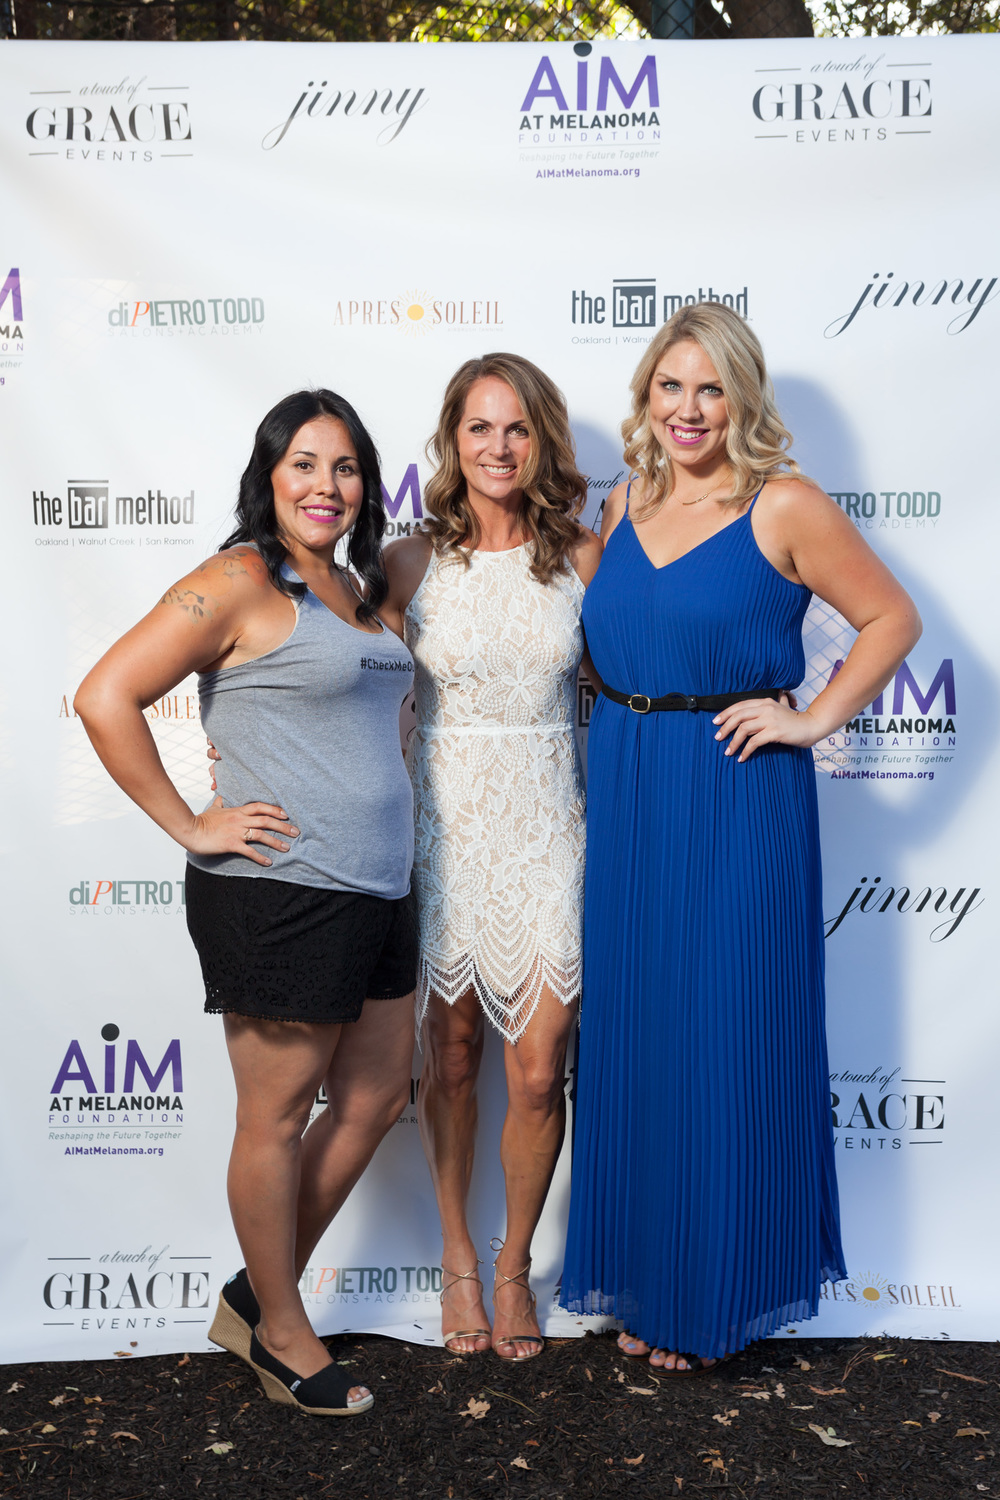 meet me in miami event recap apres soleil mg 2982 jpg